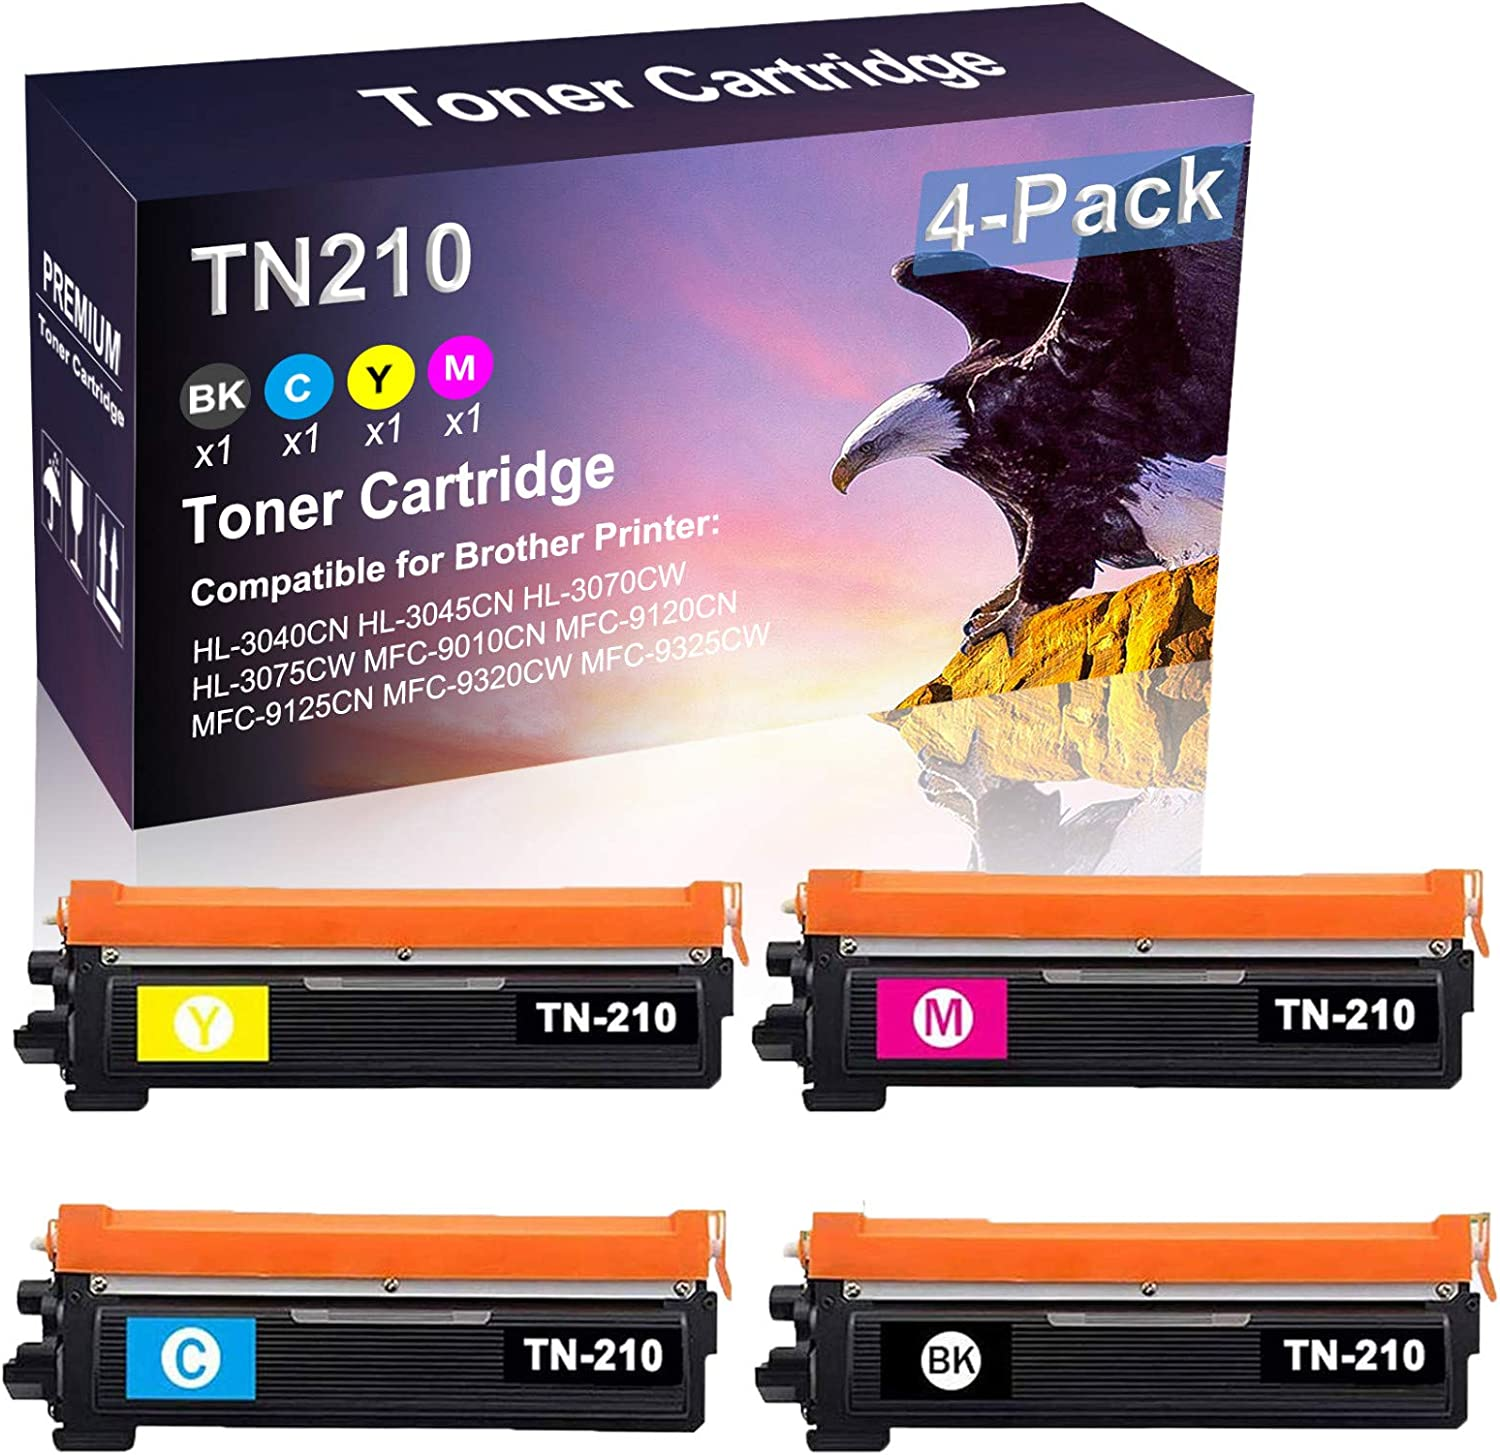 4 Pack (BK+C+Y+M) Compatible HL-3075CW MFC-9010CN MFC-9120CN Toner Cartridge Replacement for Brother TN210 Printer Toner Cartridge (High Capacity)